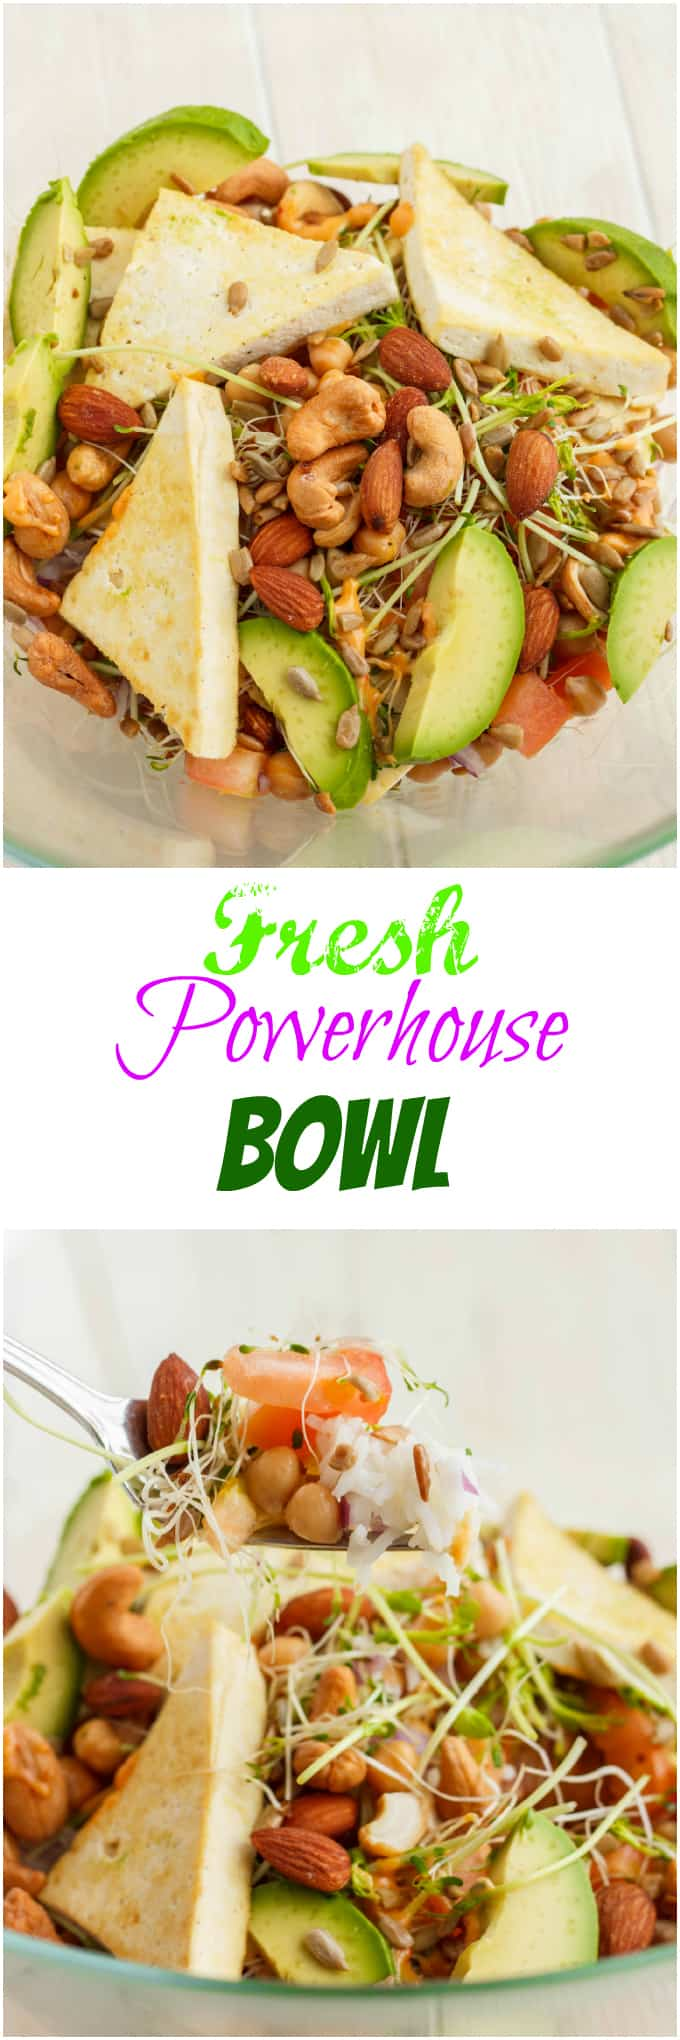 Fresh Powerhouse Bowl 1